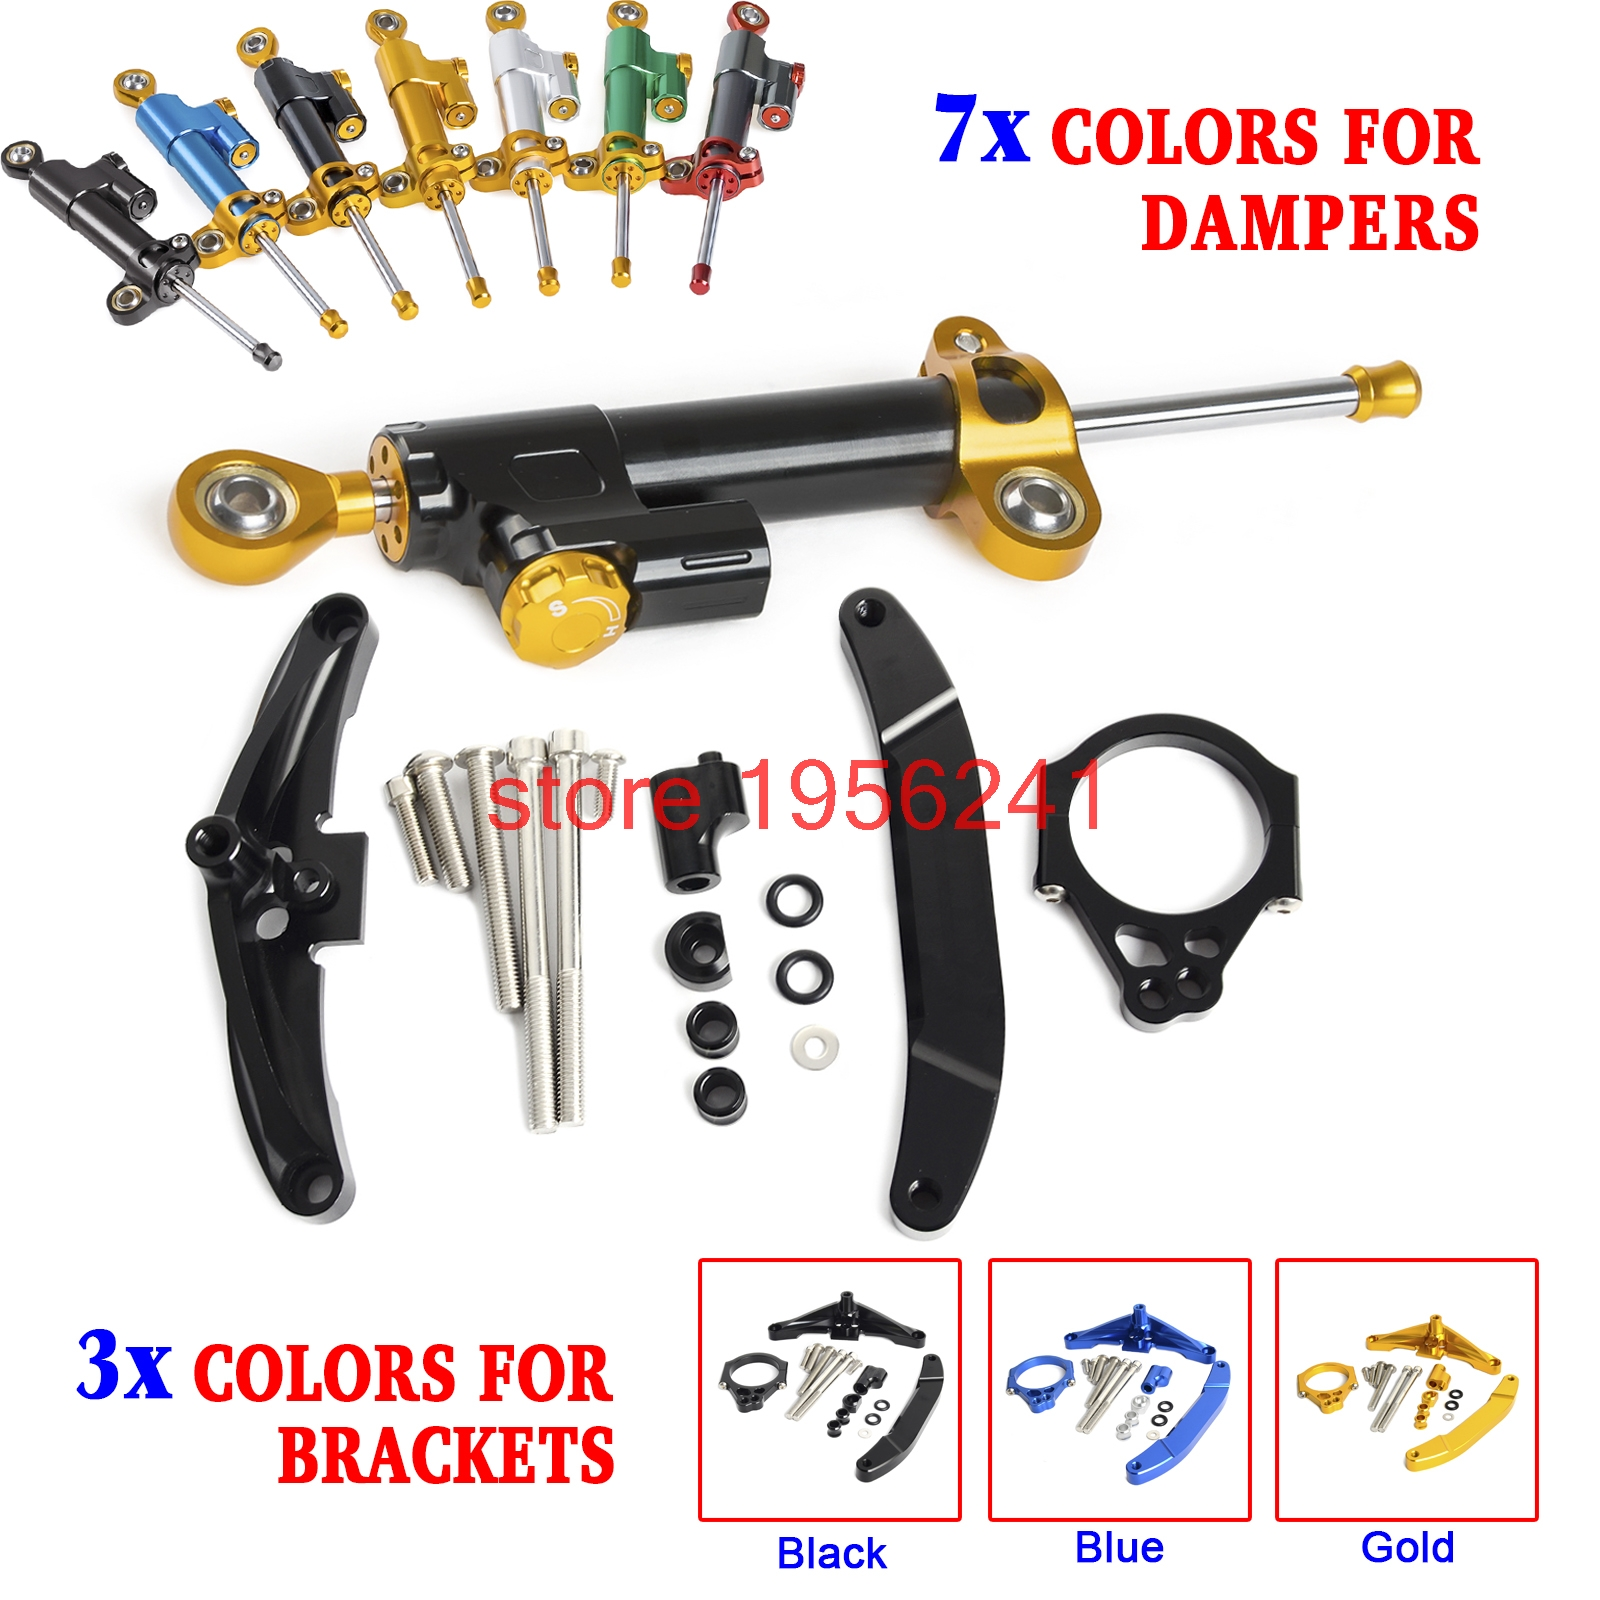 Motorcycle Steering Damper Mounting Bracket Kit for Yamaha  FZ1 Fazer 2006 - 2015 2007 2008 2009 2010 2011 2012 2013 2014 for yamaha yzfr6 yzf r6 2006 2007 2008 2009 2010 2011 2012 2013 2014 motorcycle engine stator cover chrome left side